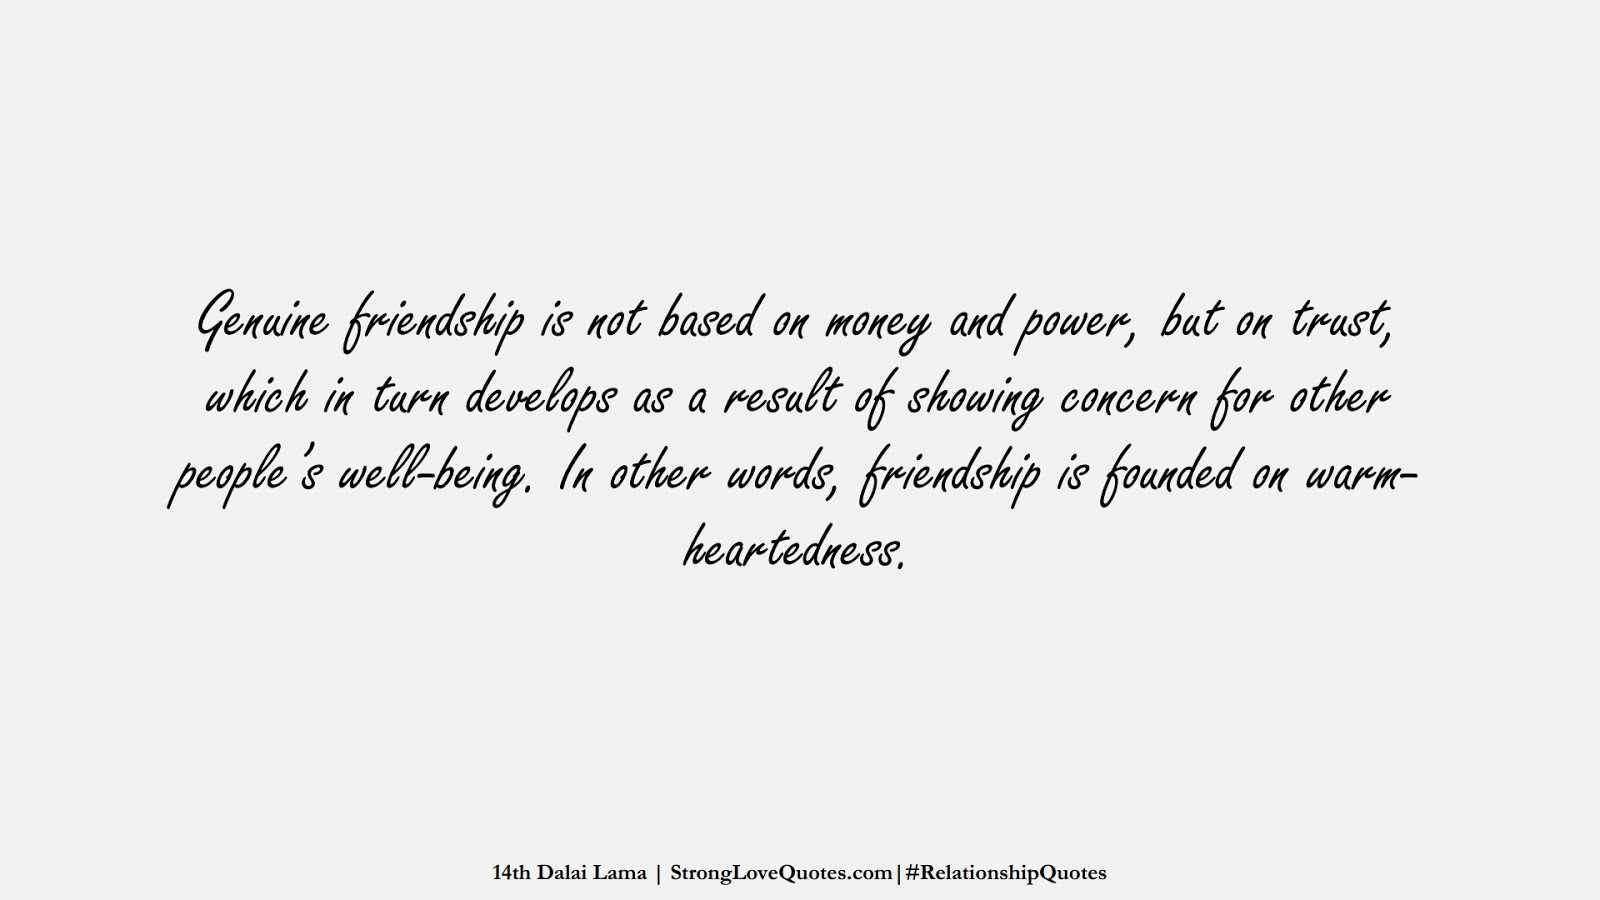 Genuine friendship is not based on money and power, but on trust, which in turn develops as a result of showing concern for other people's well-being. In other words, friendship is founded on warm-heartedness. (14th Dalai Lama);  #RelationshipQuotes